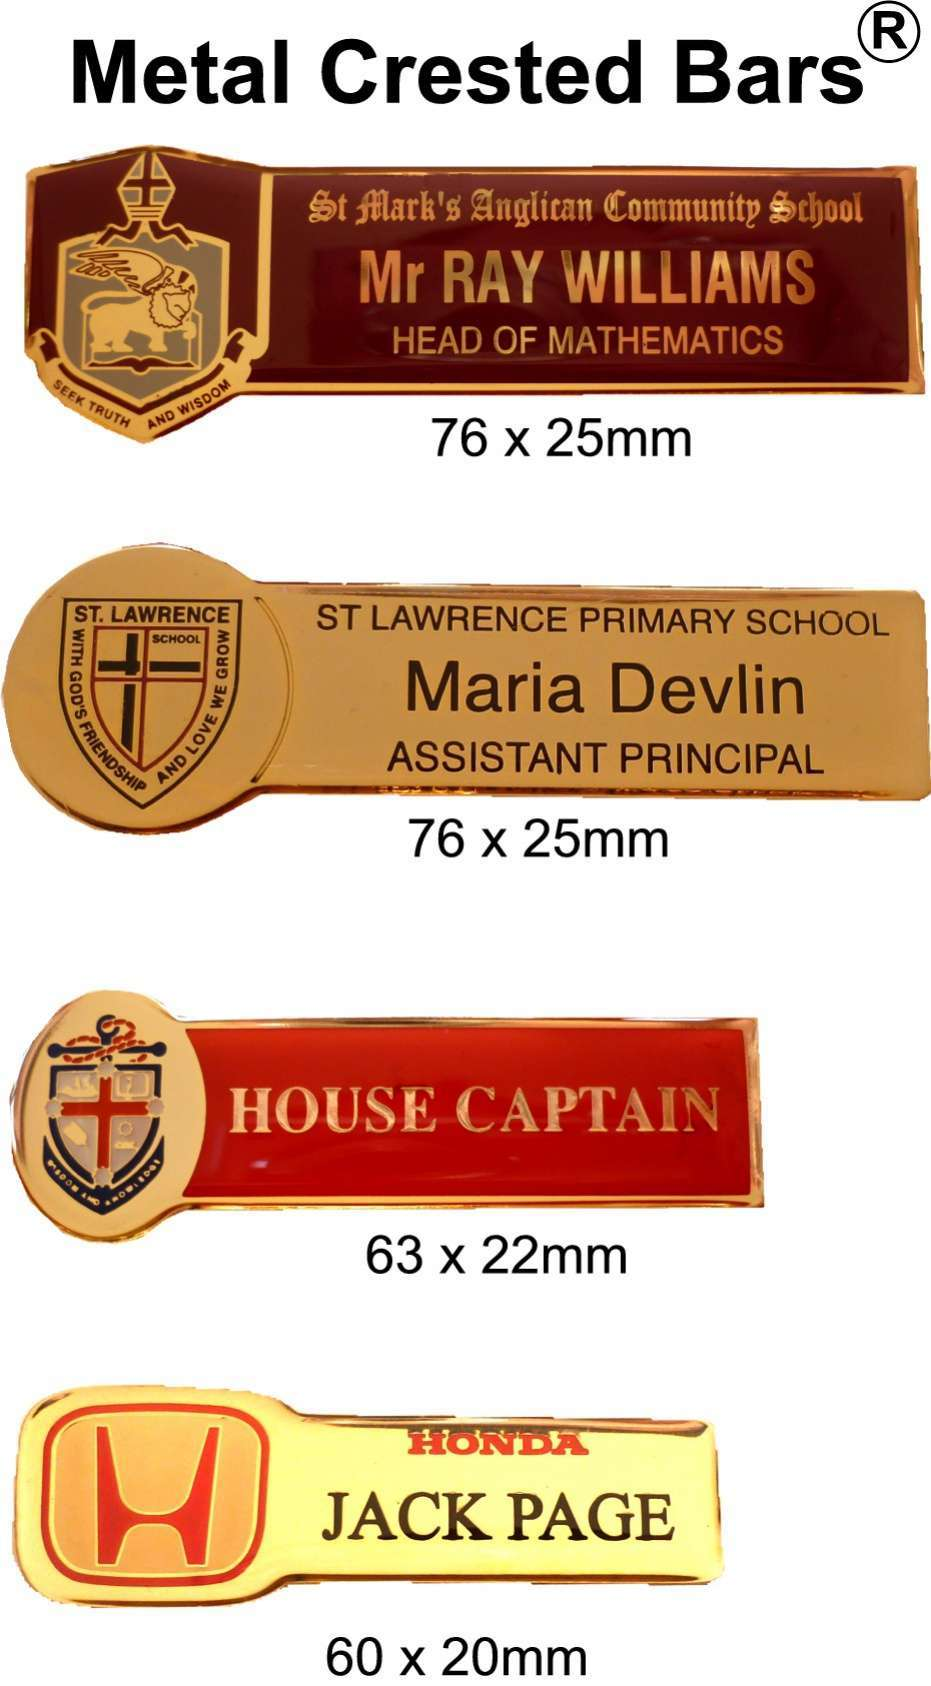 Western Australia Products - Name Badges